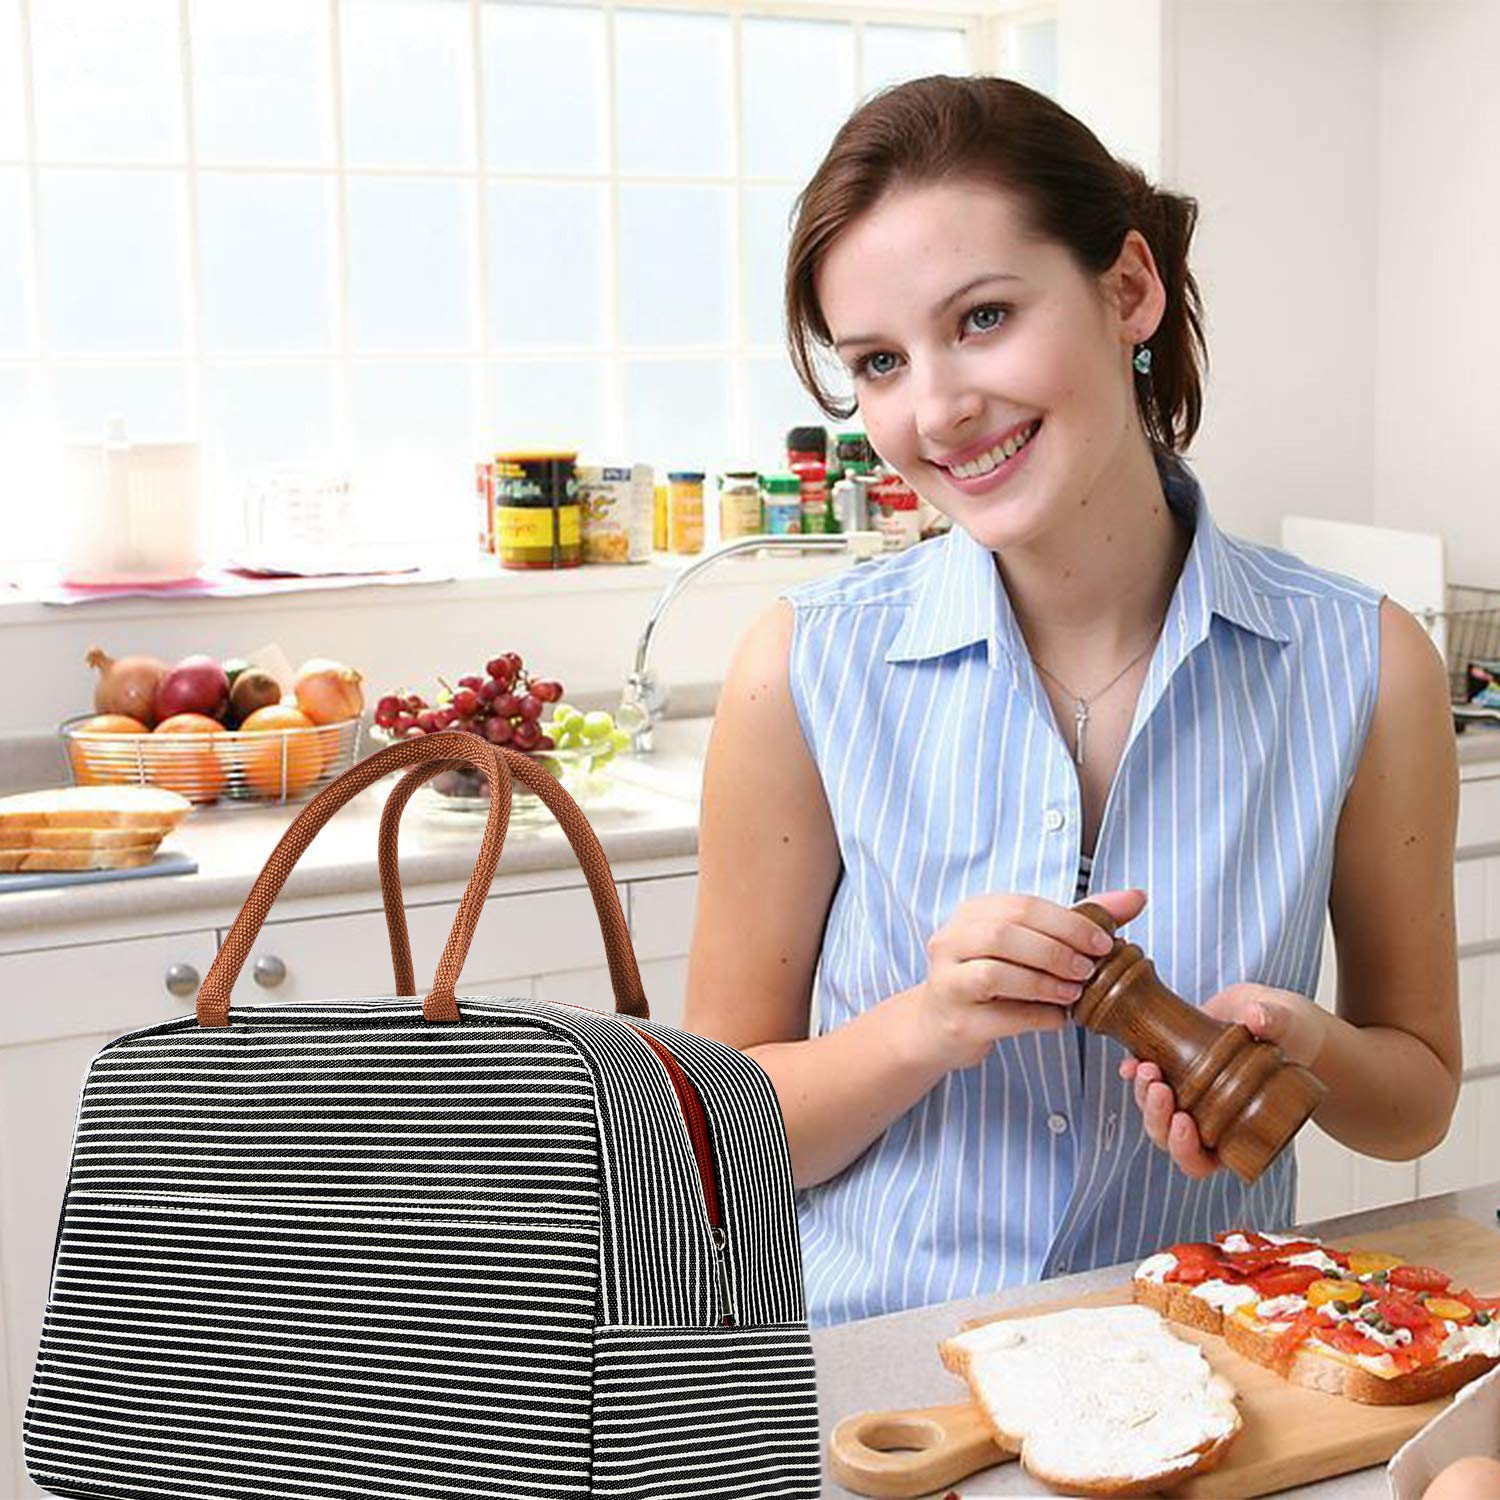 Lunch Bag Cooler Tote Bag Luch Box Lunch Container Lunch Organizer,Lunch Holder with Front Pocket Zipper Closure for Woman Man Work Pinic or Travel